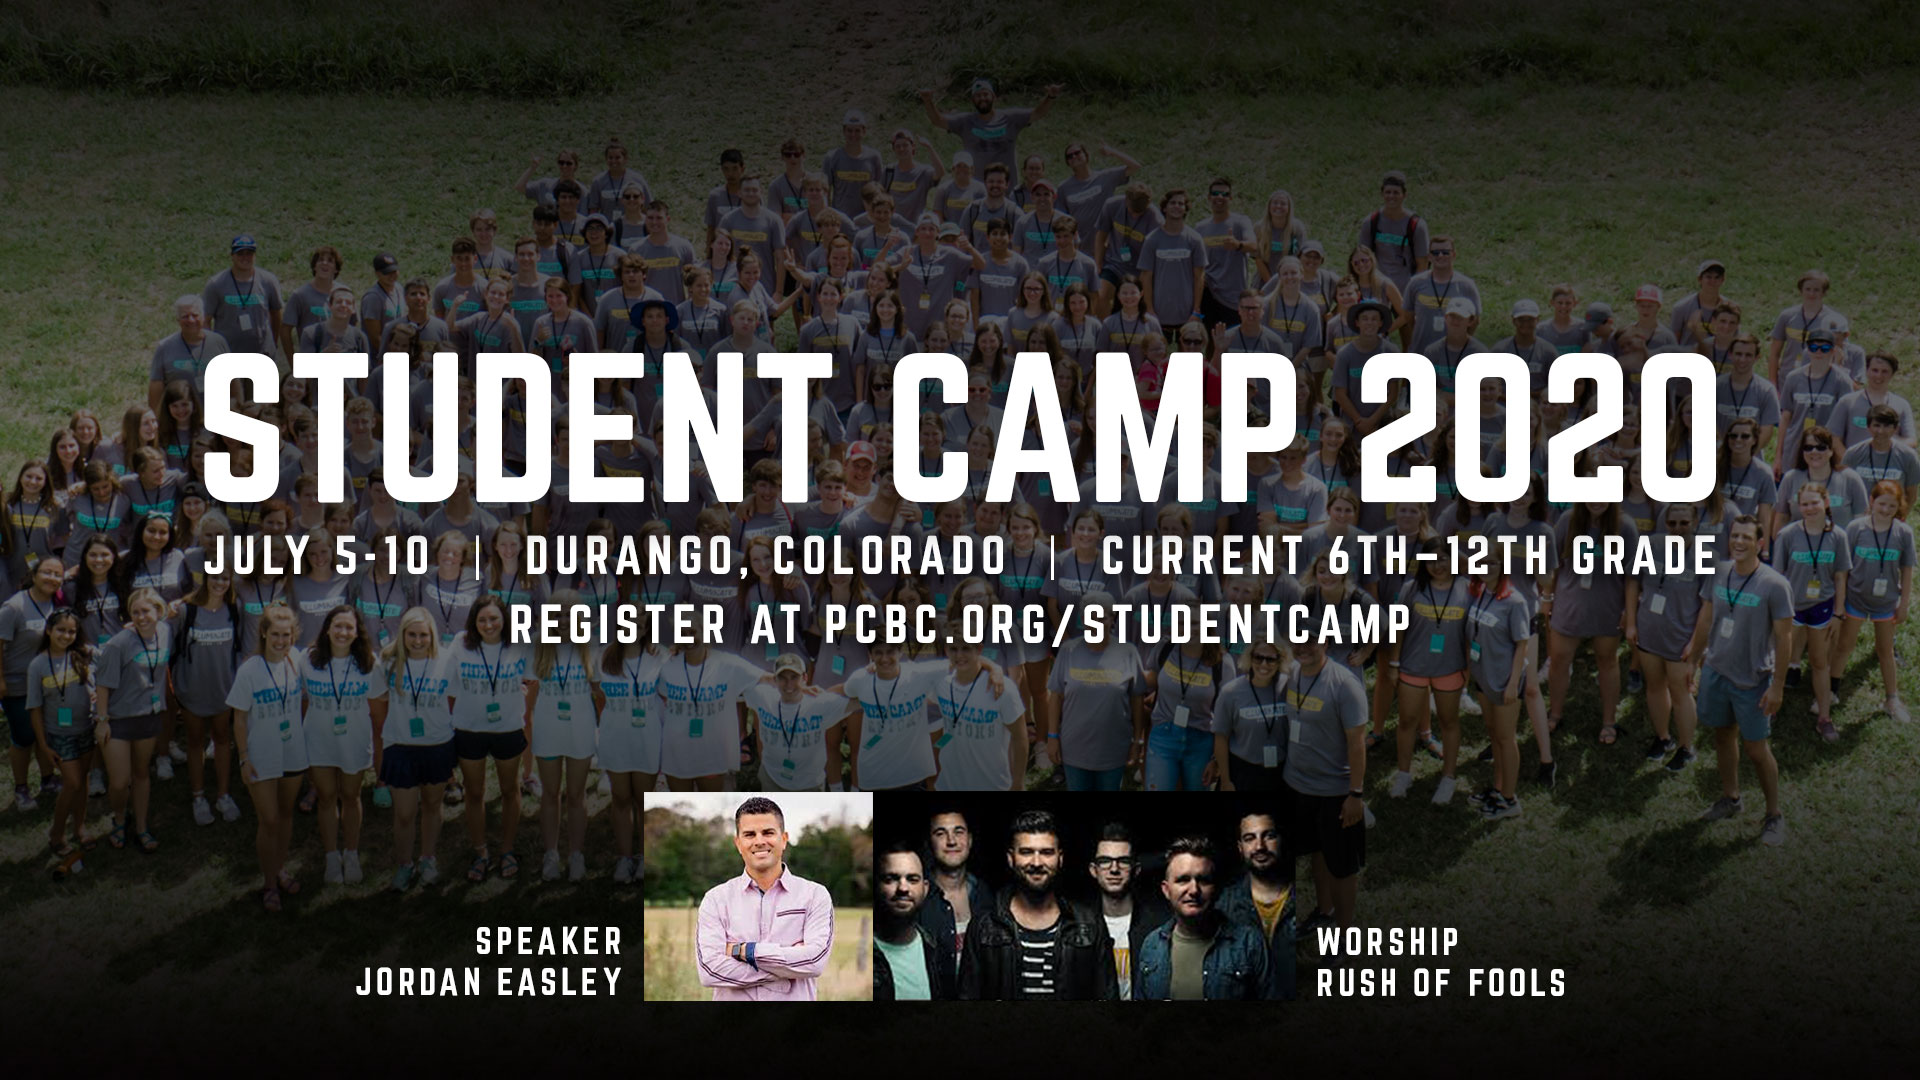 Student Camp 2020